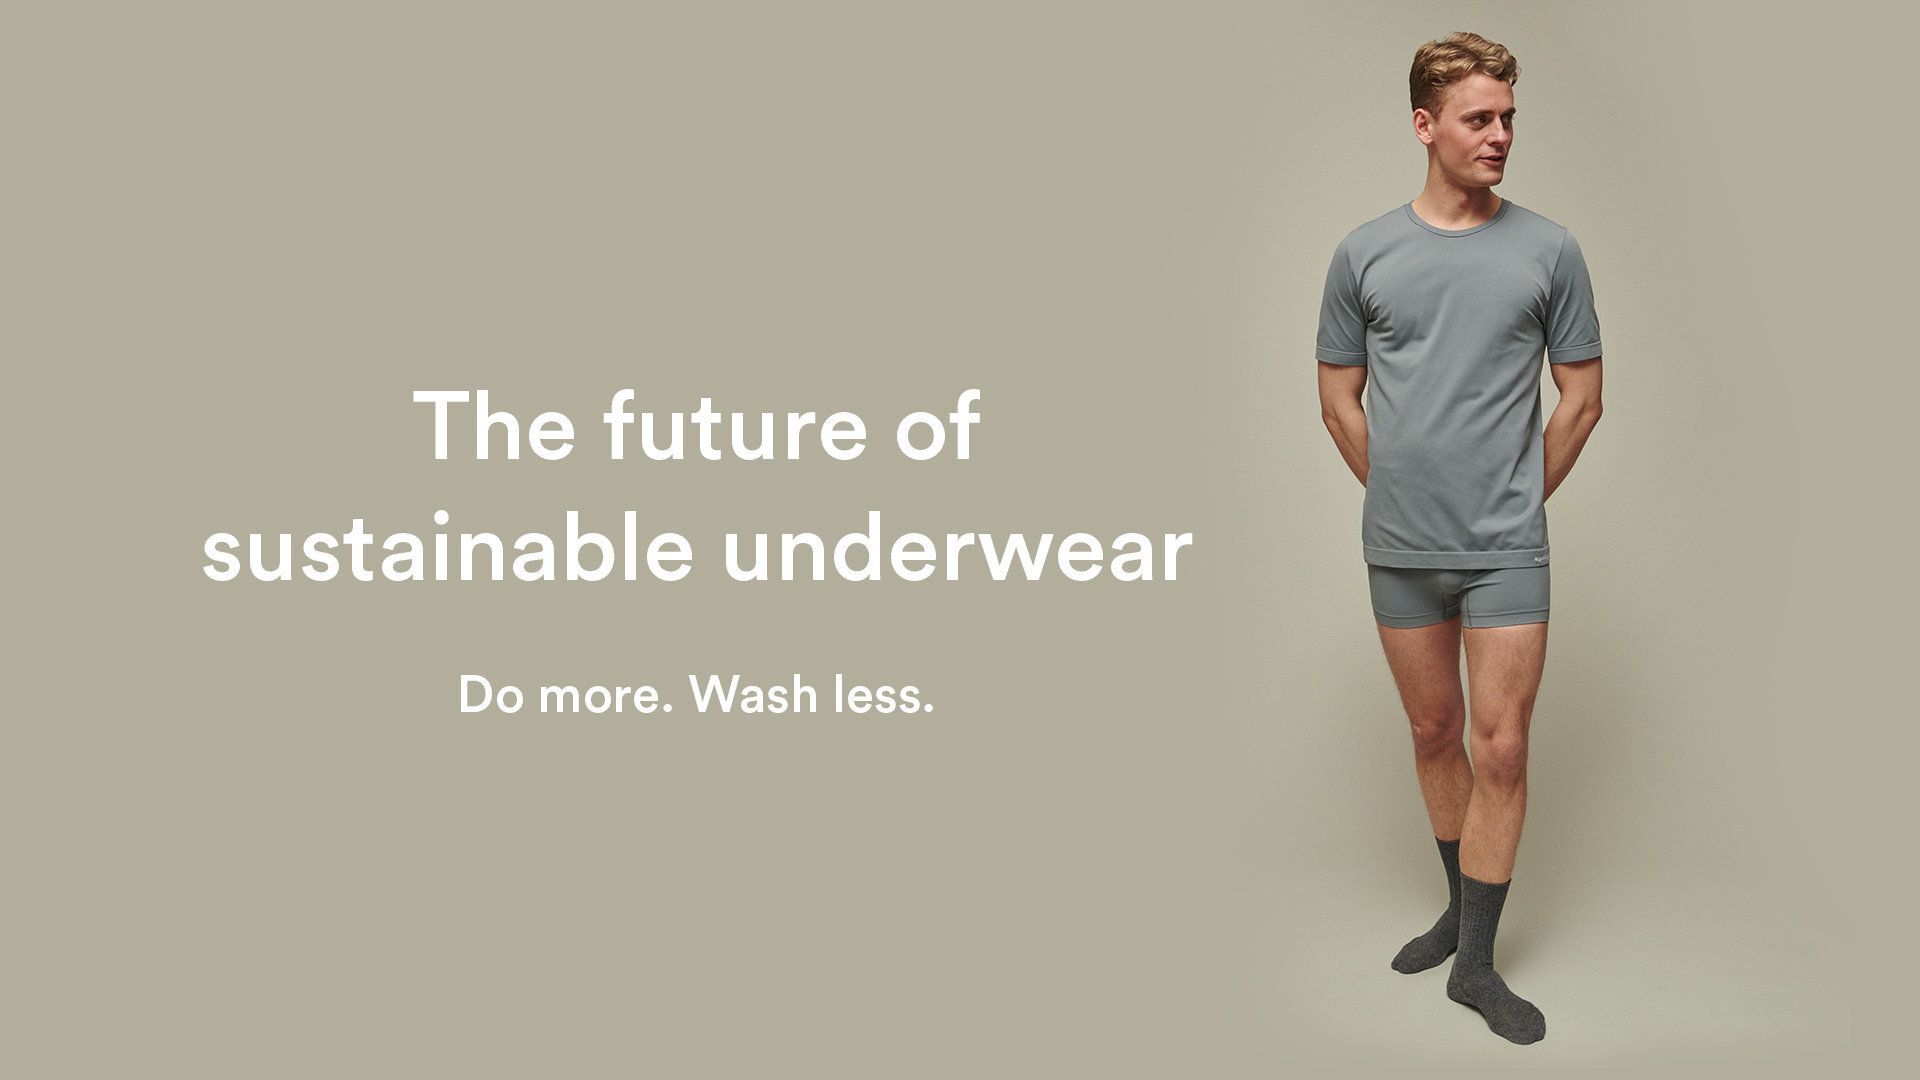 This Sustainable Underwear Doesn't Have To Be Washed 'For Weeks'